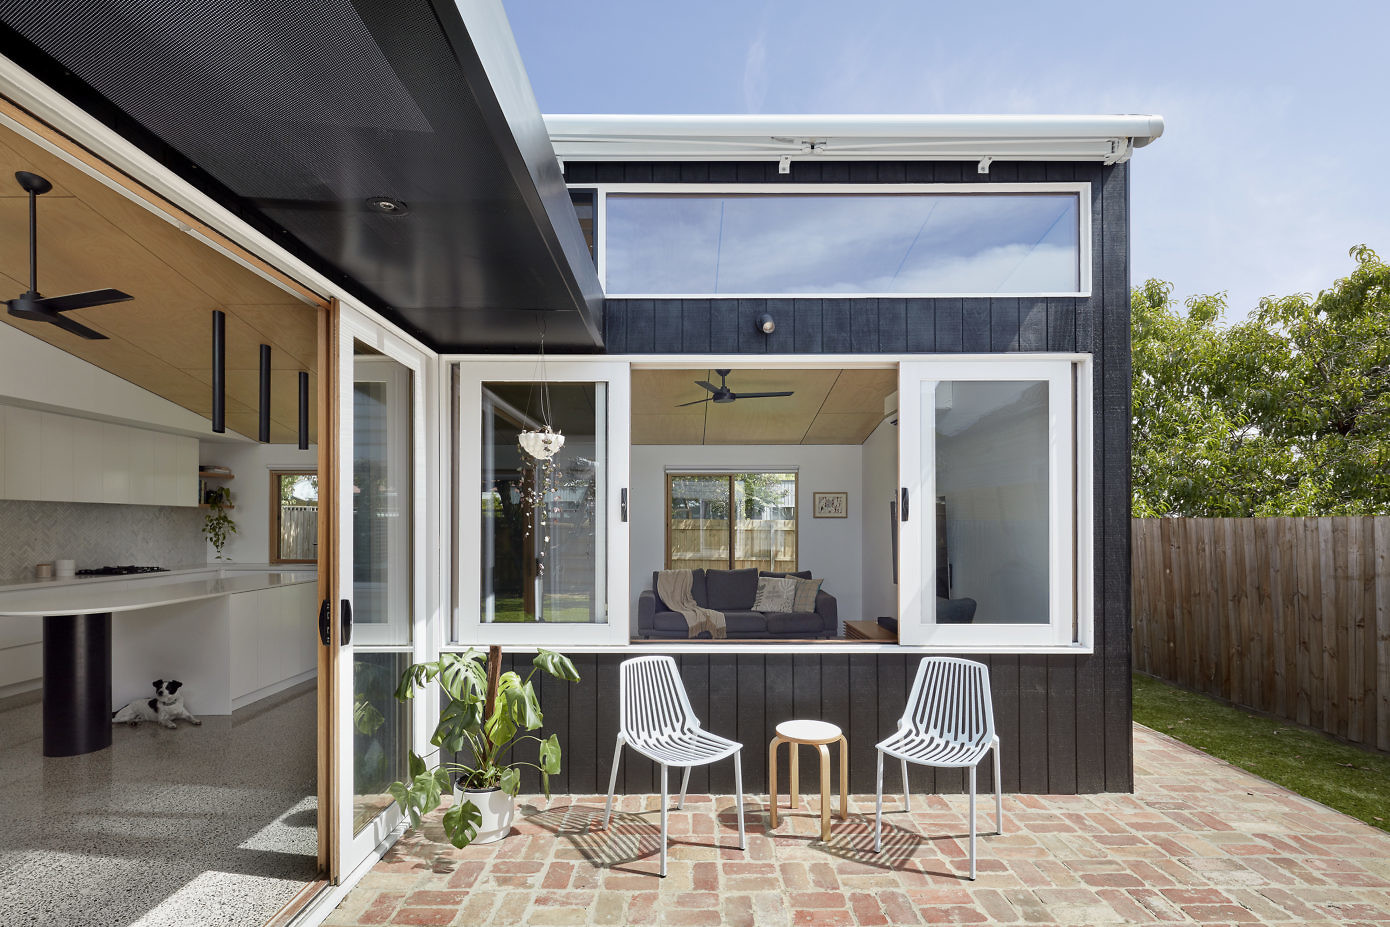 House Lean-2 by Ben Callery Architects